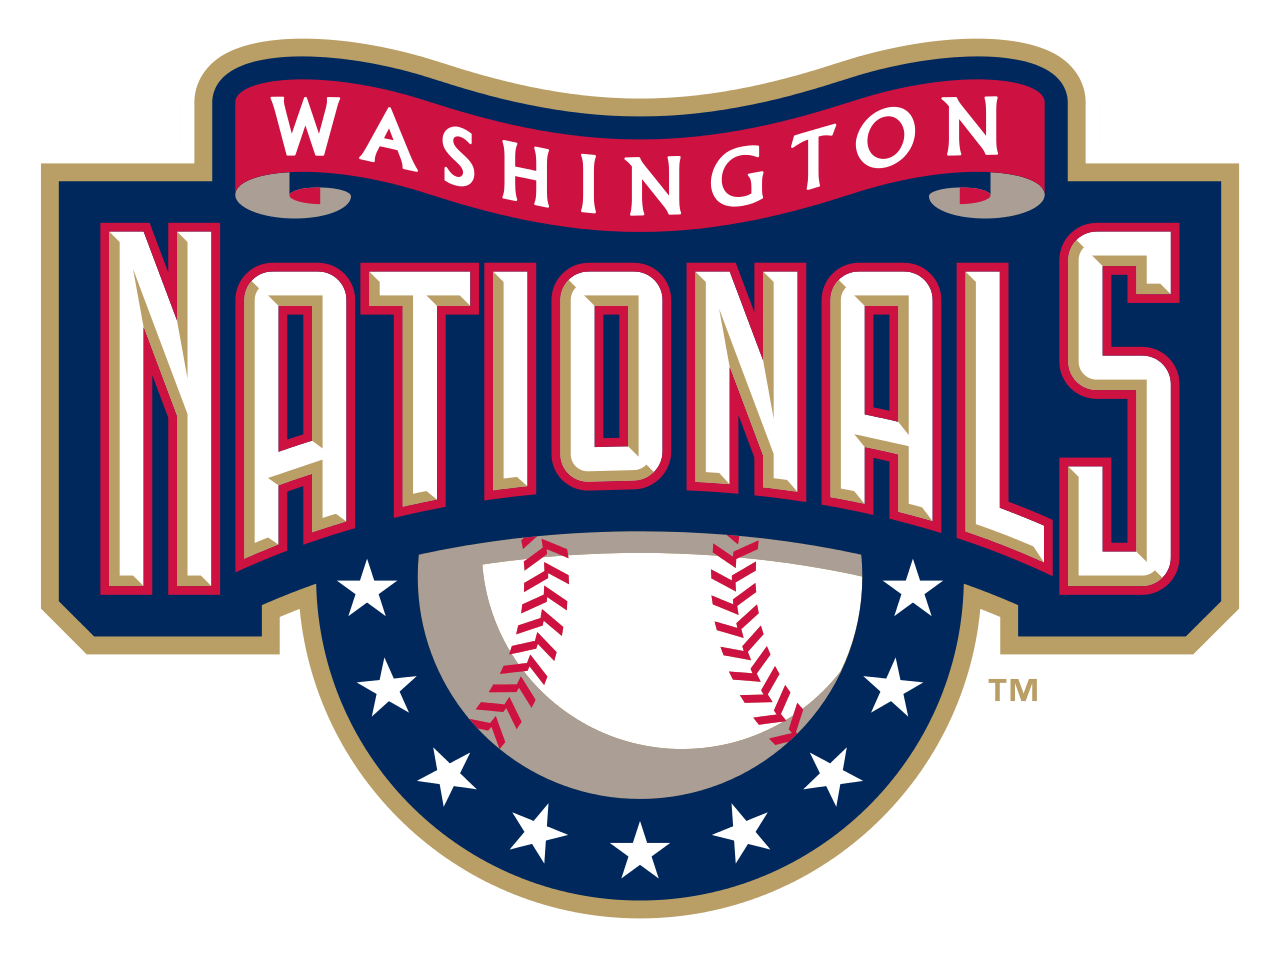 Washington Nationals Logo Sign Transparent Png Stickpng